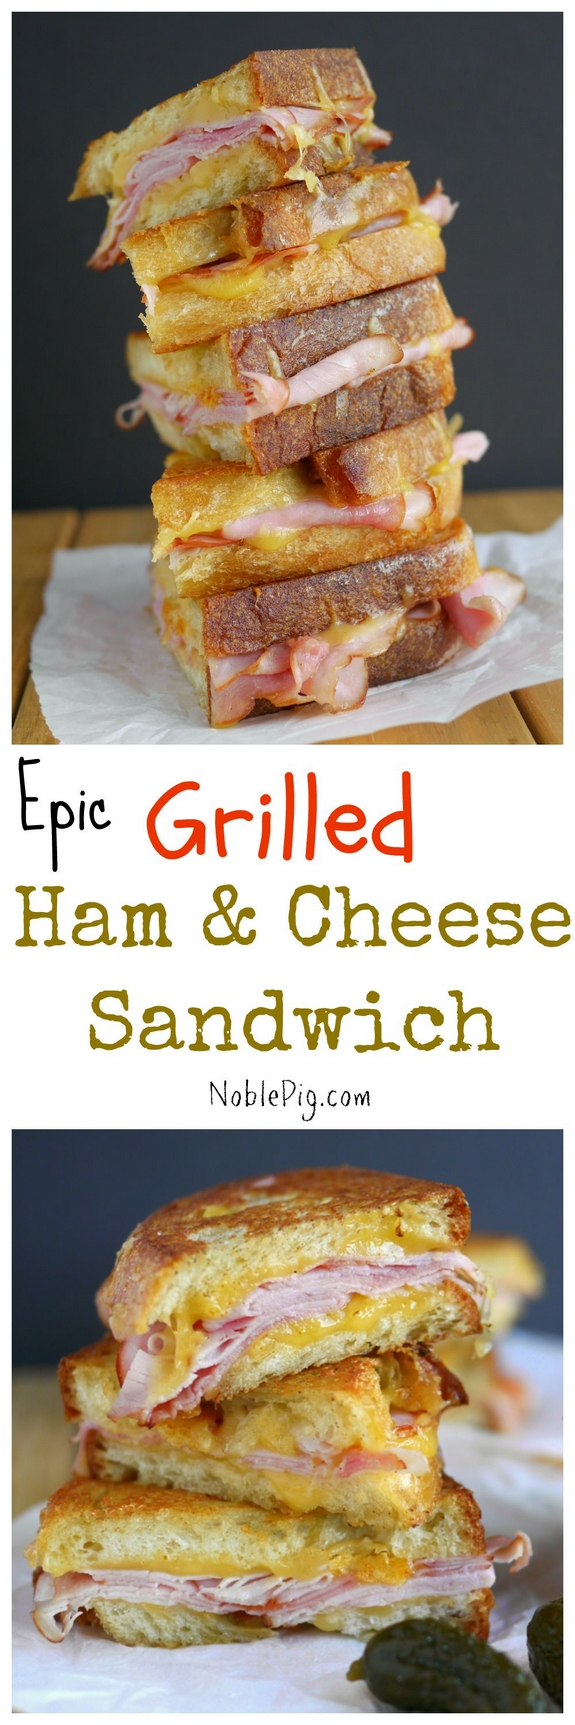 Epic Grilled Ham and Cheese Sandwich